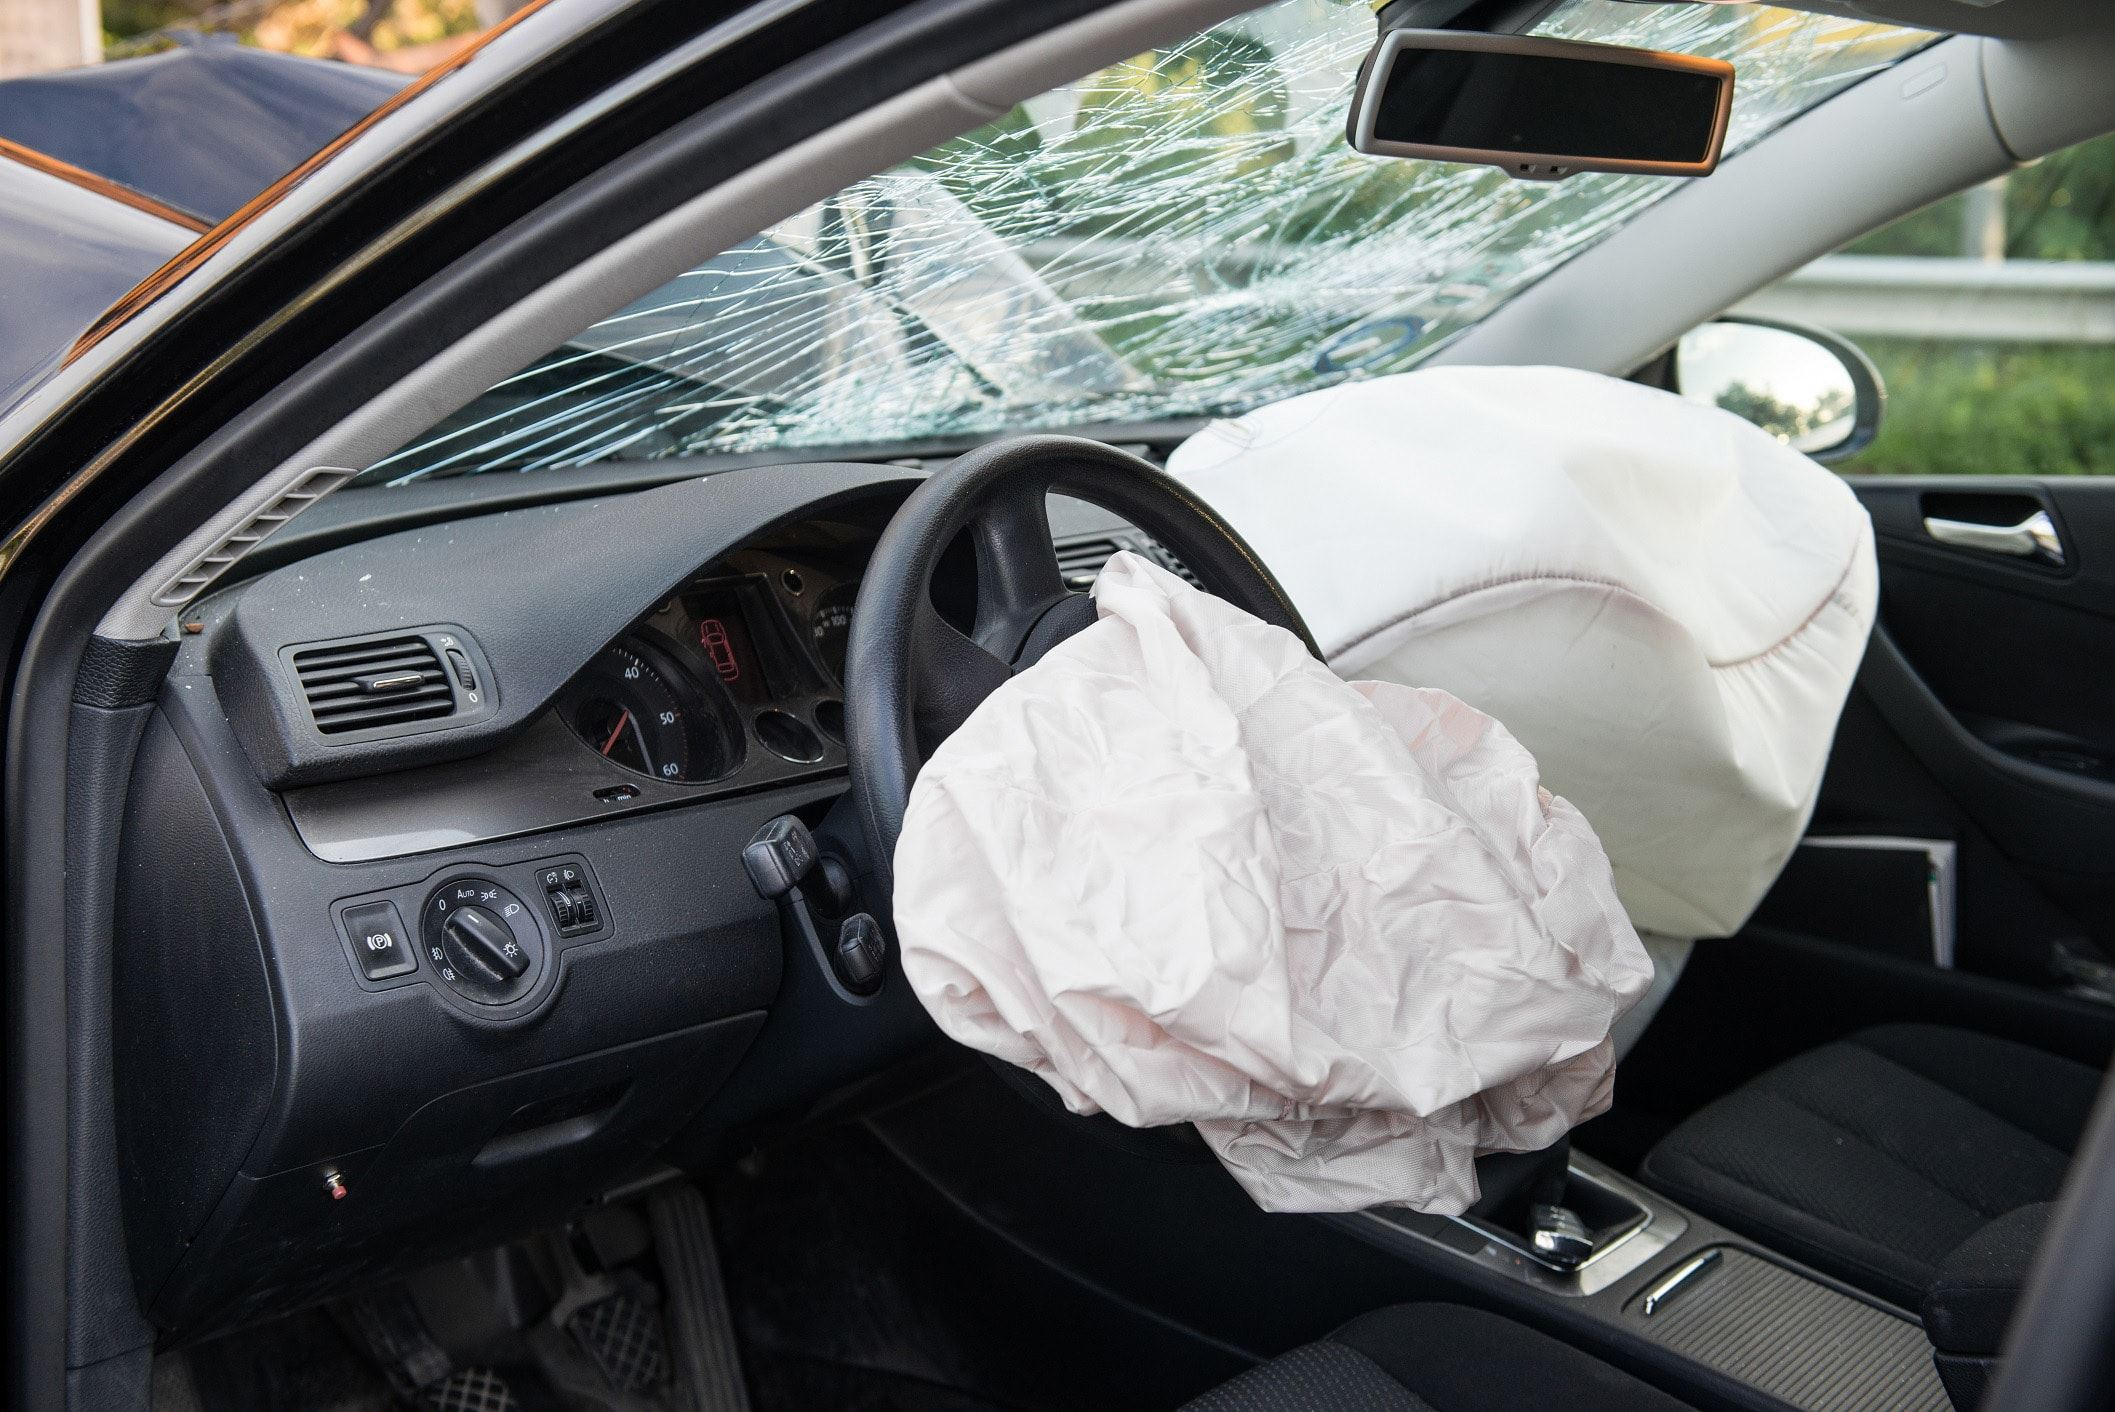 Cracked windshield and deployed airbag